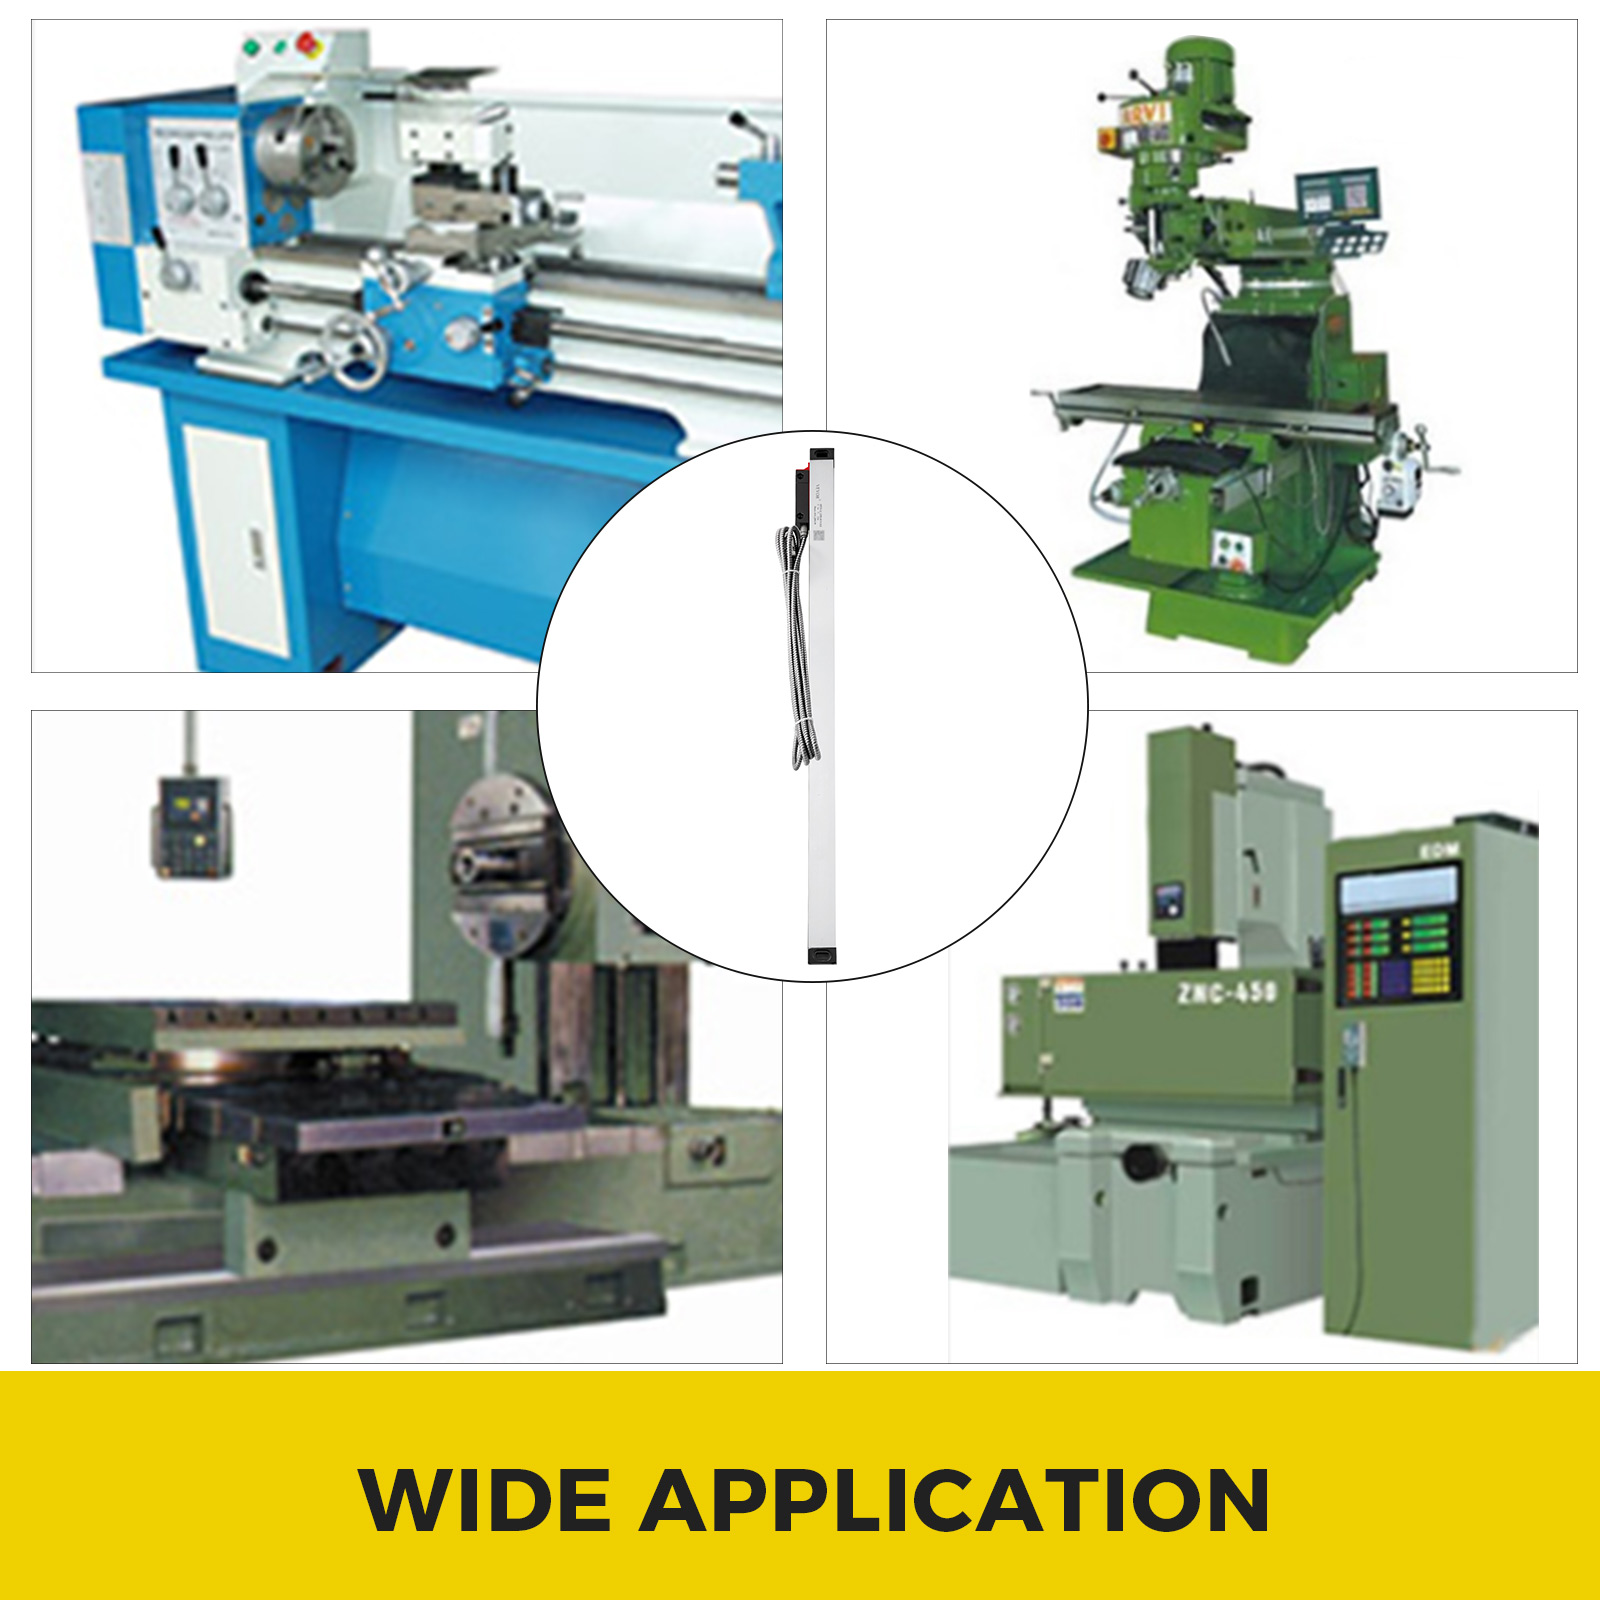 2-3-Axis-Digital-Readout-Linear-Scale-Double-Seal-5-Bearing-System-Grinding thumbnail 139